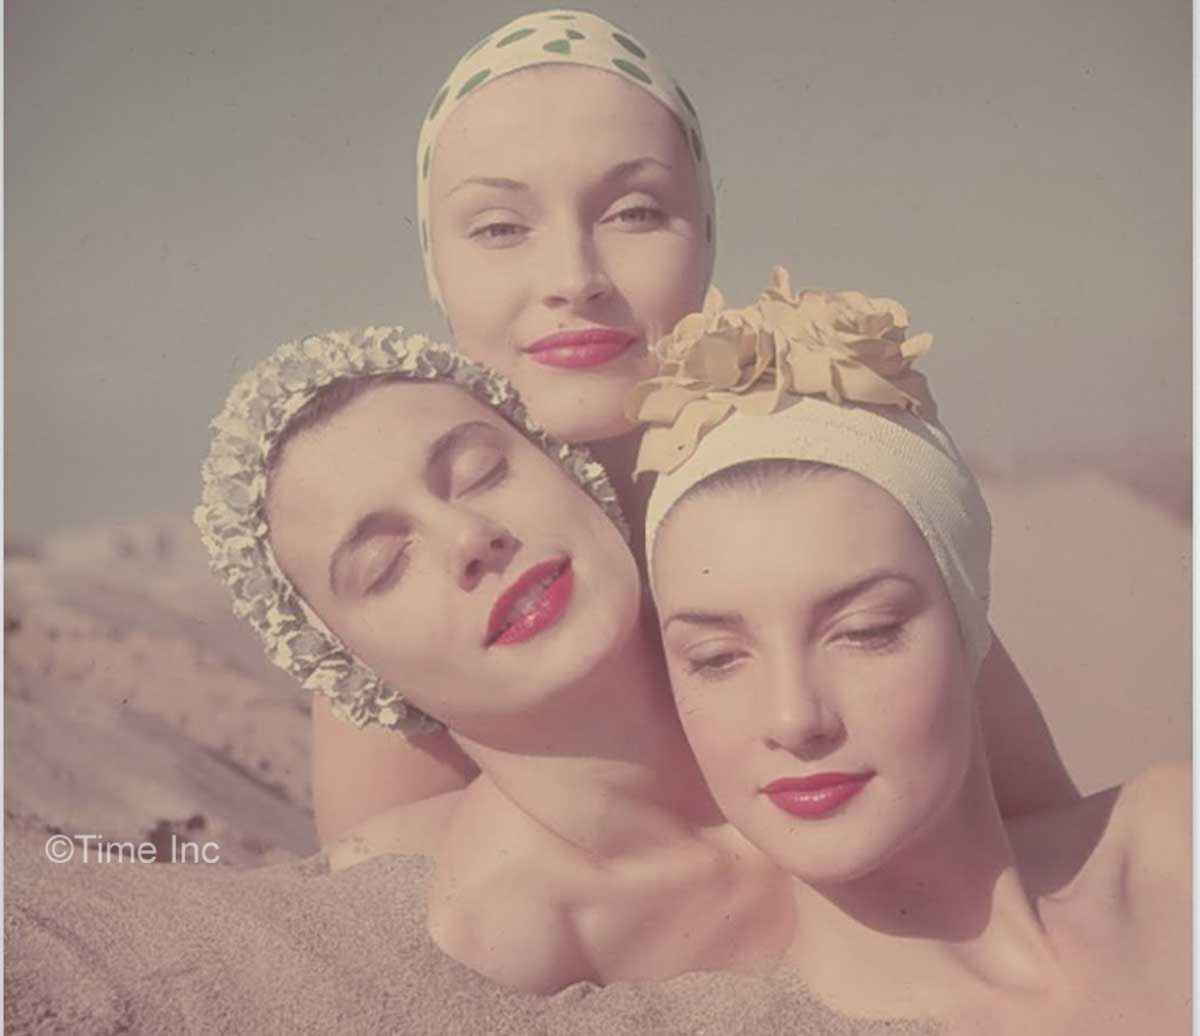 1950s Fashion – Swimming Caps In Vogue